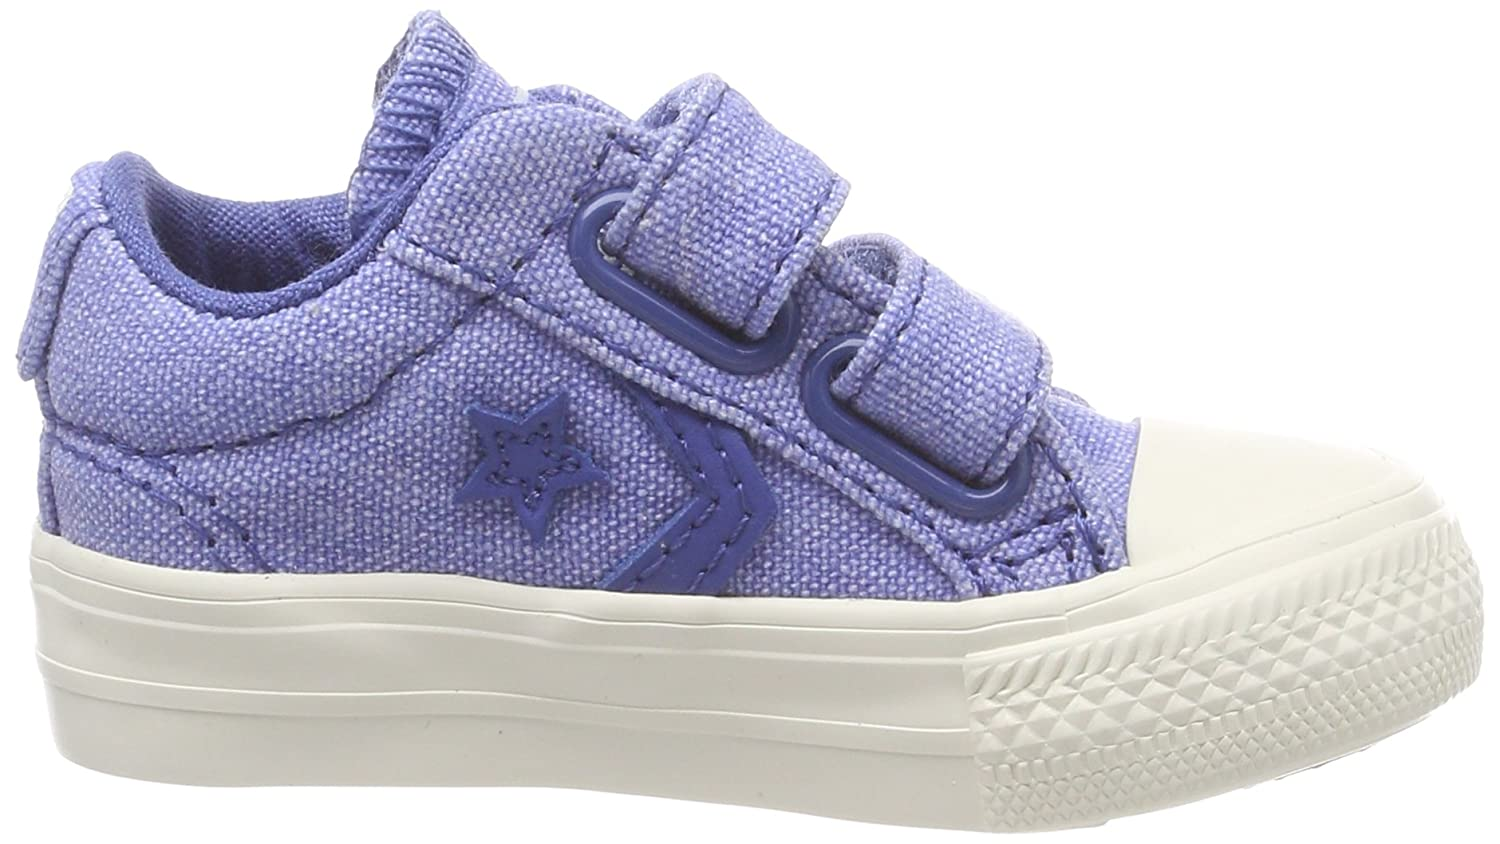 Converse Unisex-Kinder Star Player EV 2V OX Nightfall Blue Fitnessschuhe, Blau (Nightfall Blue/Nightfall Blue 441), 26 EU